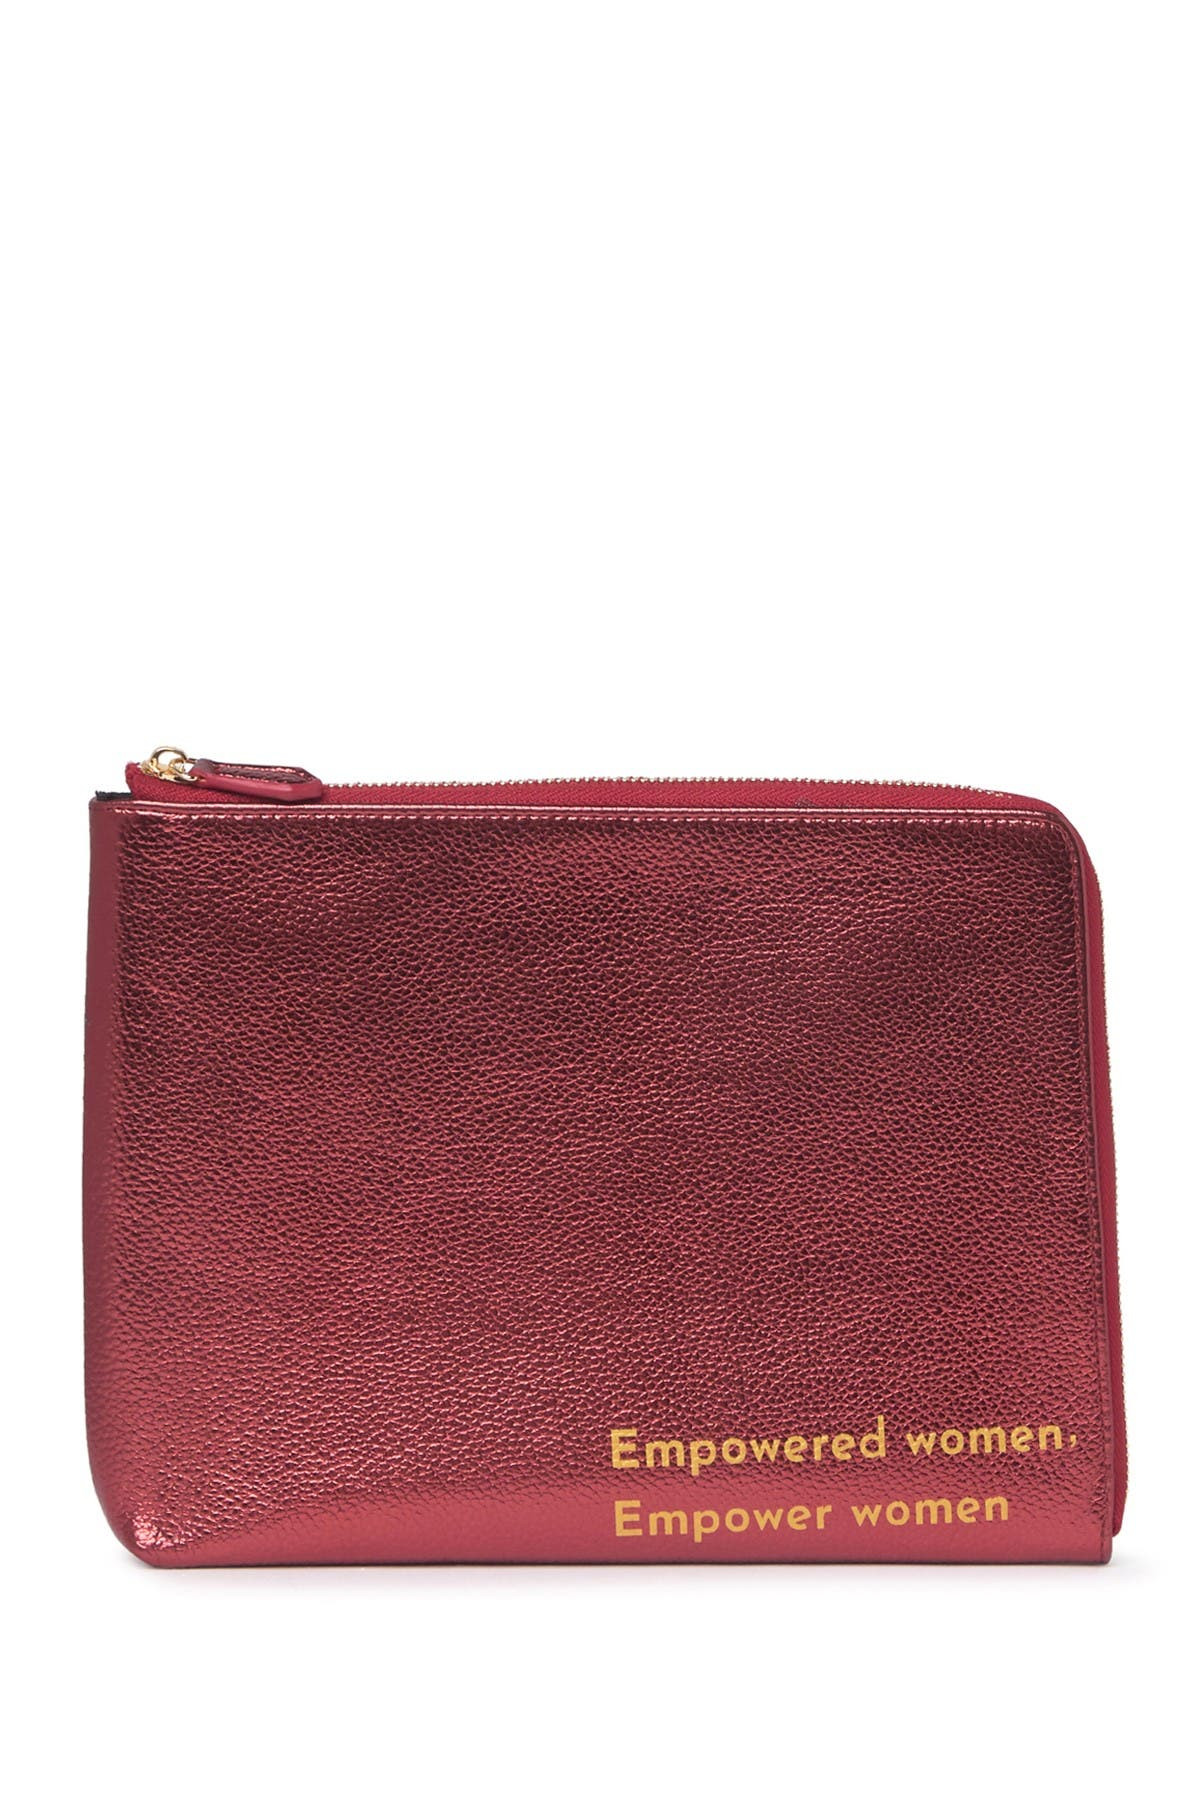 Image of Urban Expressions Metallic Pouch